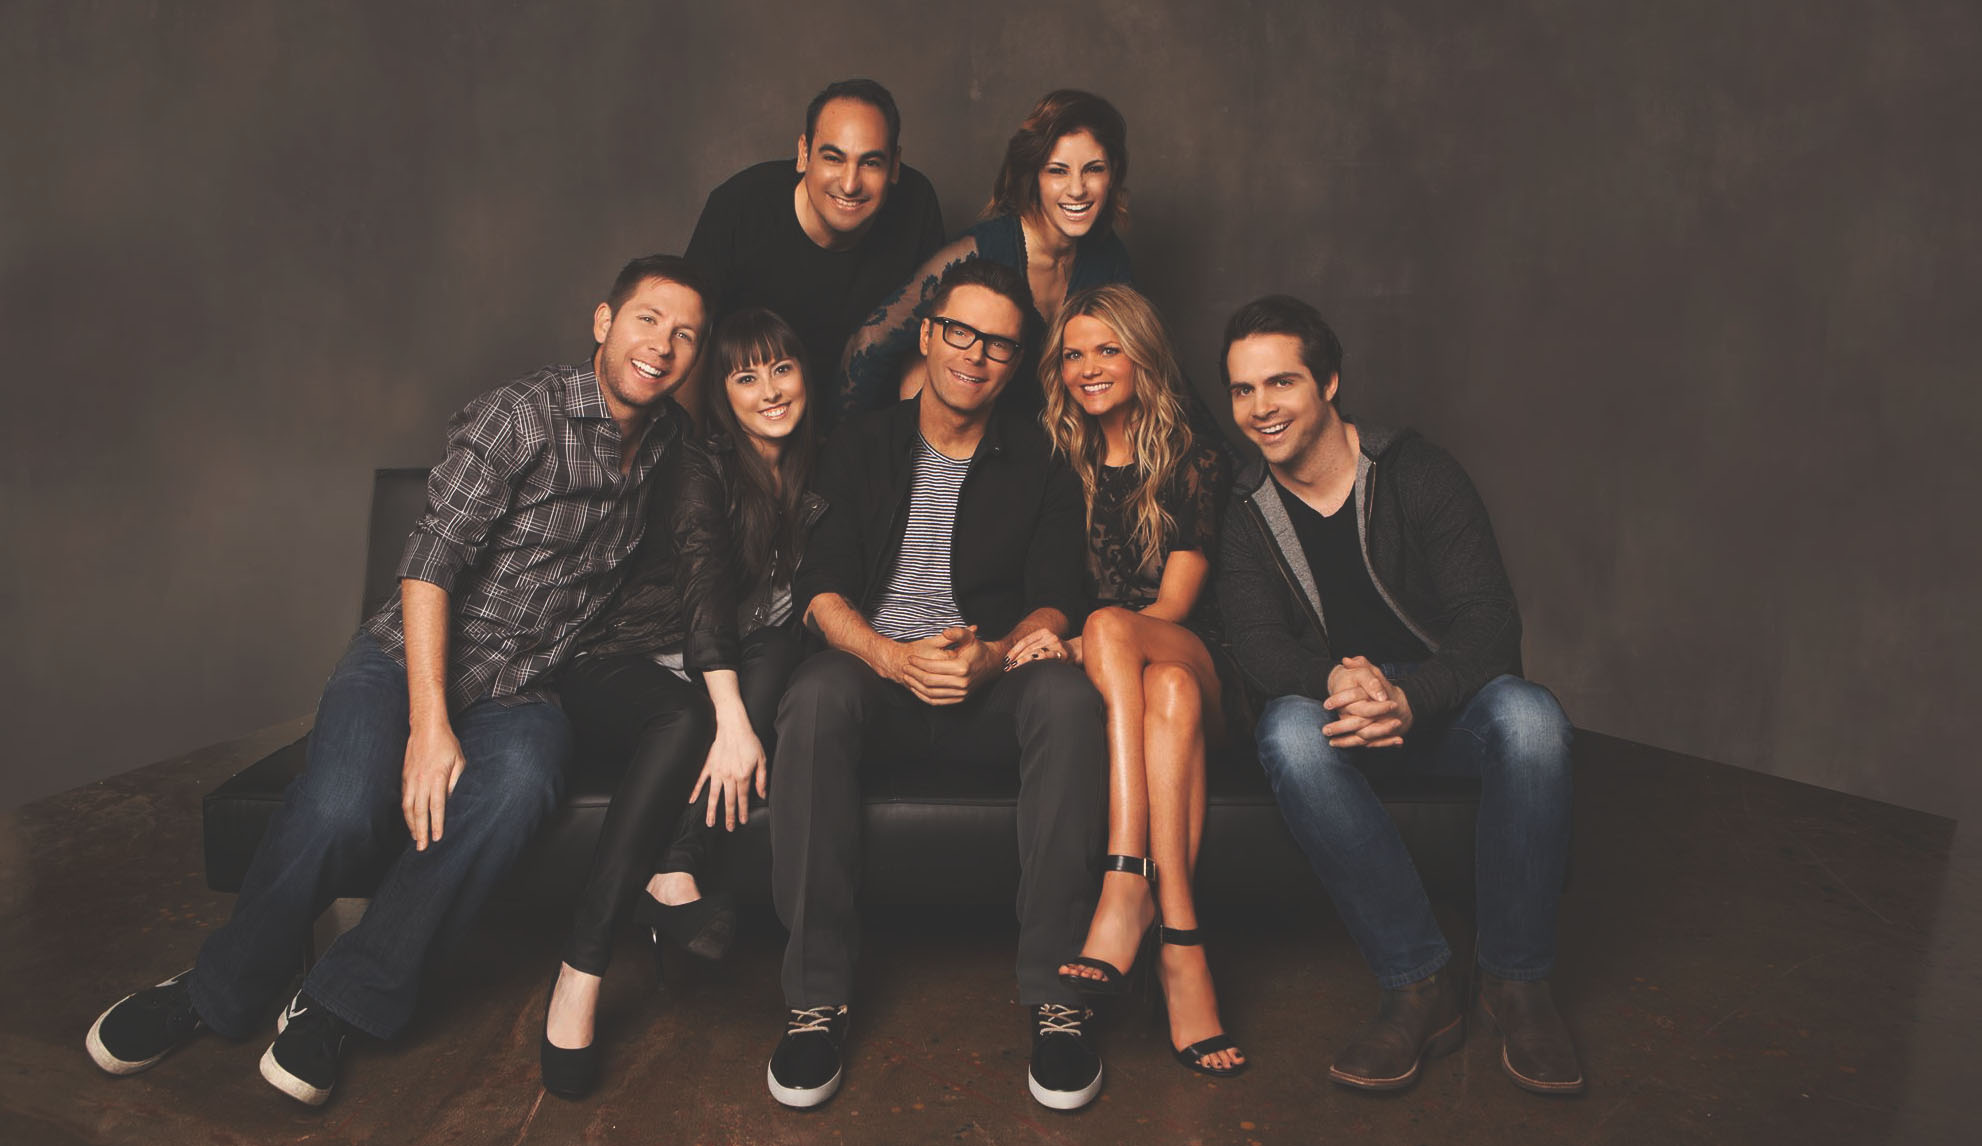 Bobby bones cast pictures